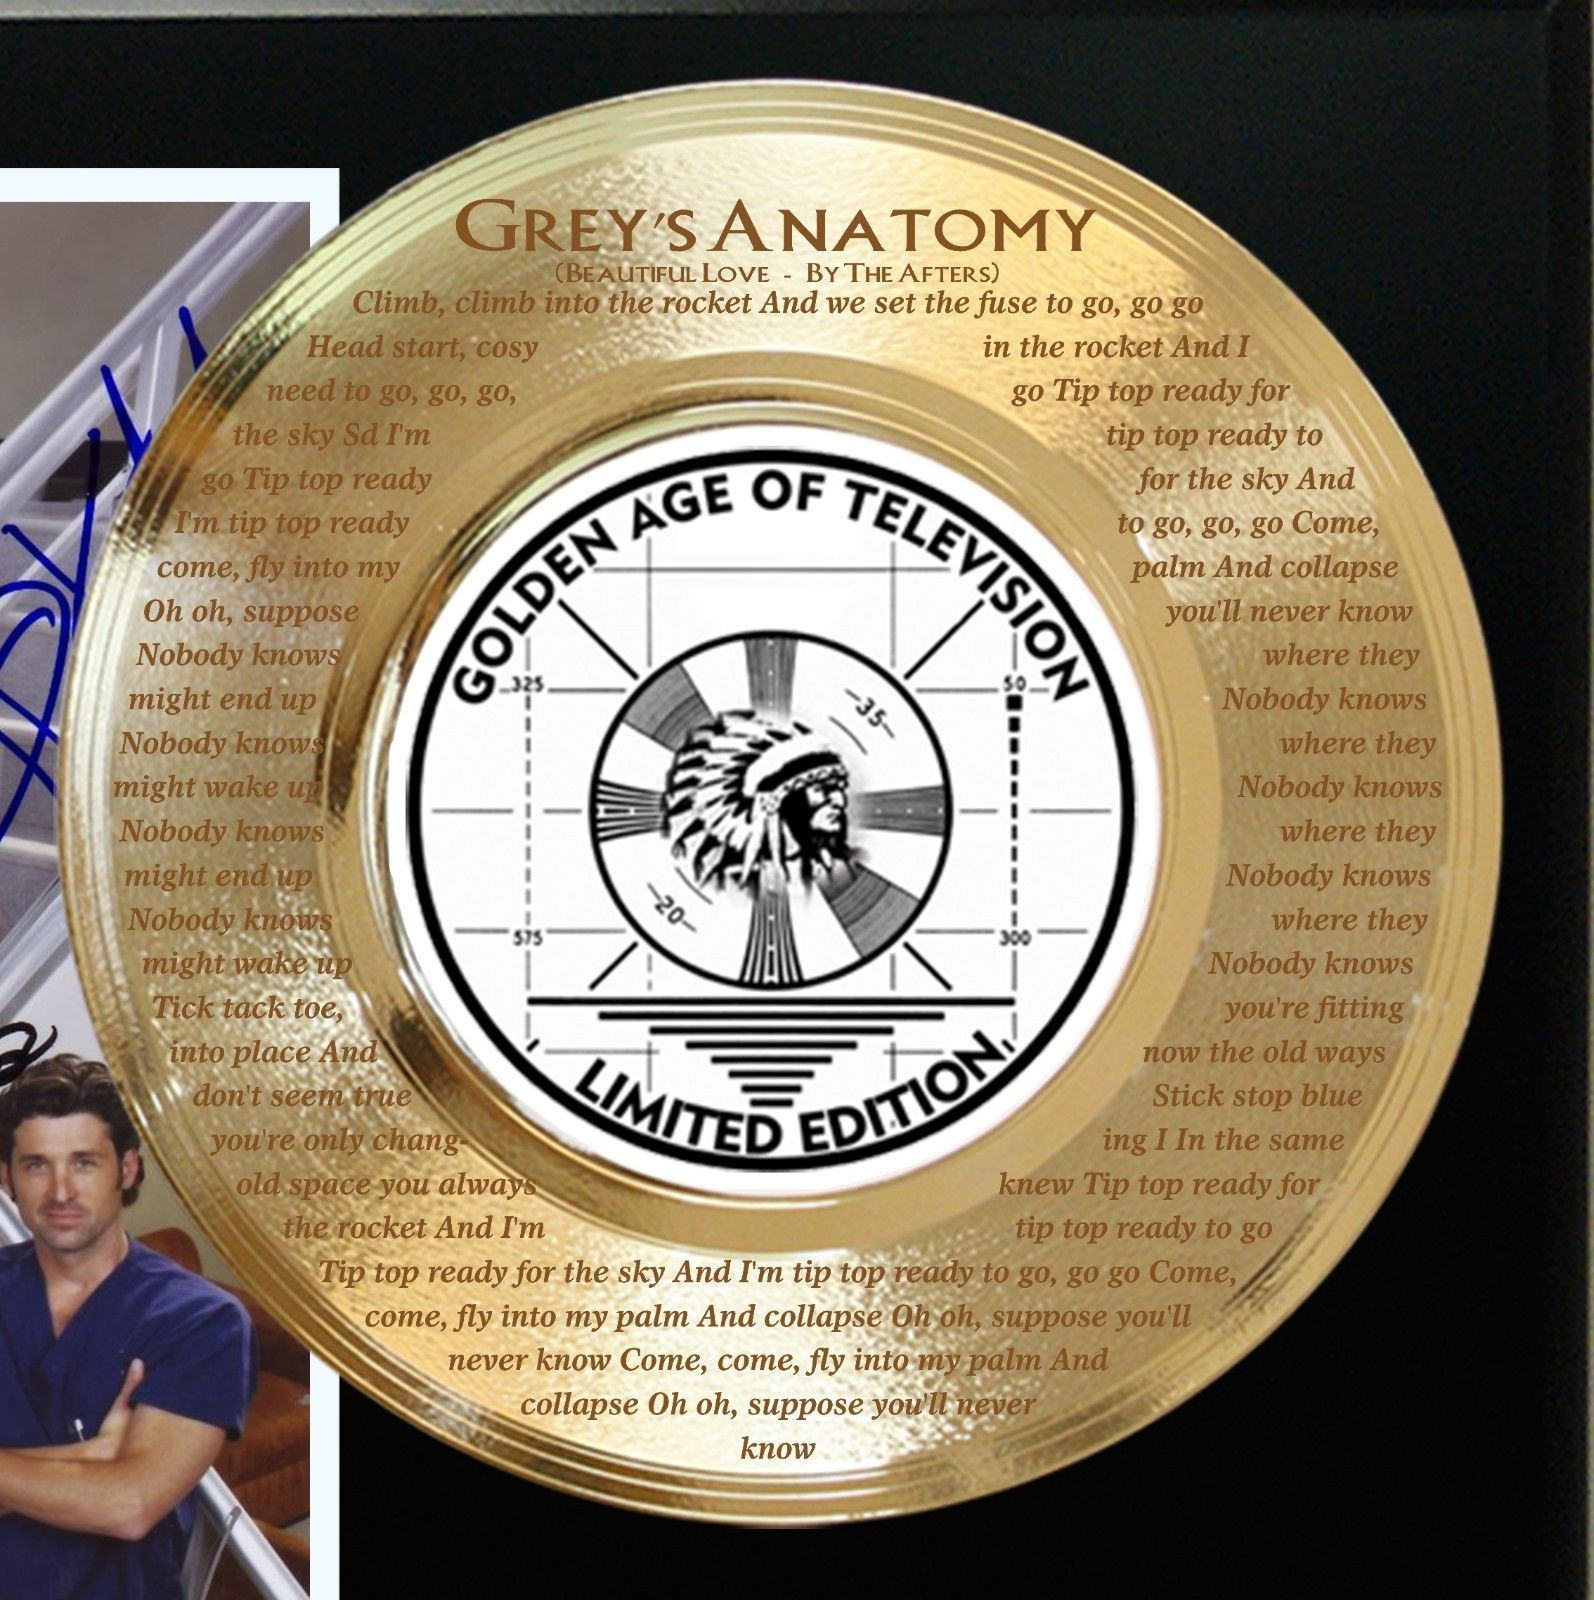 GREY'S ANATOMY LTD EDITION SIGNATURE AND THEME SONG SERIES ...